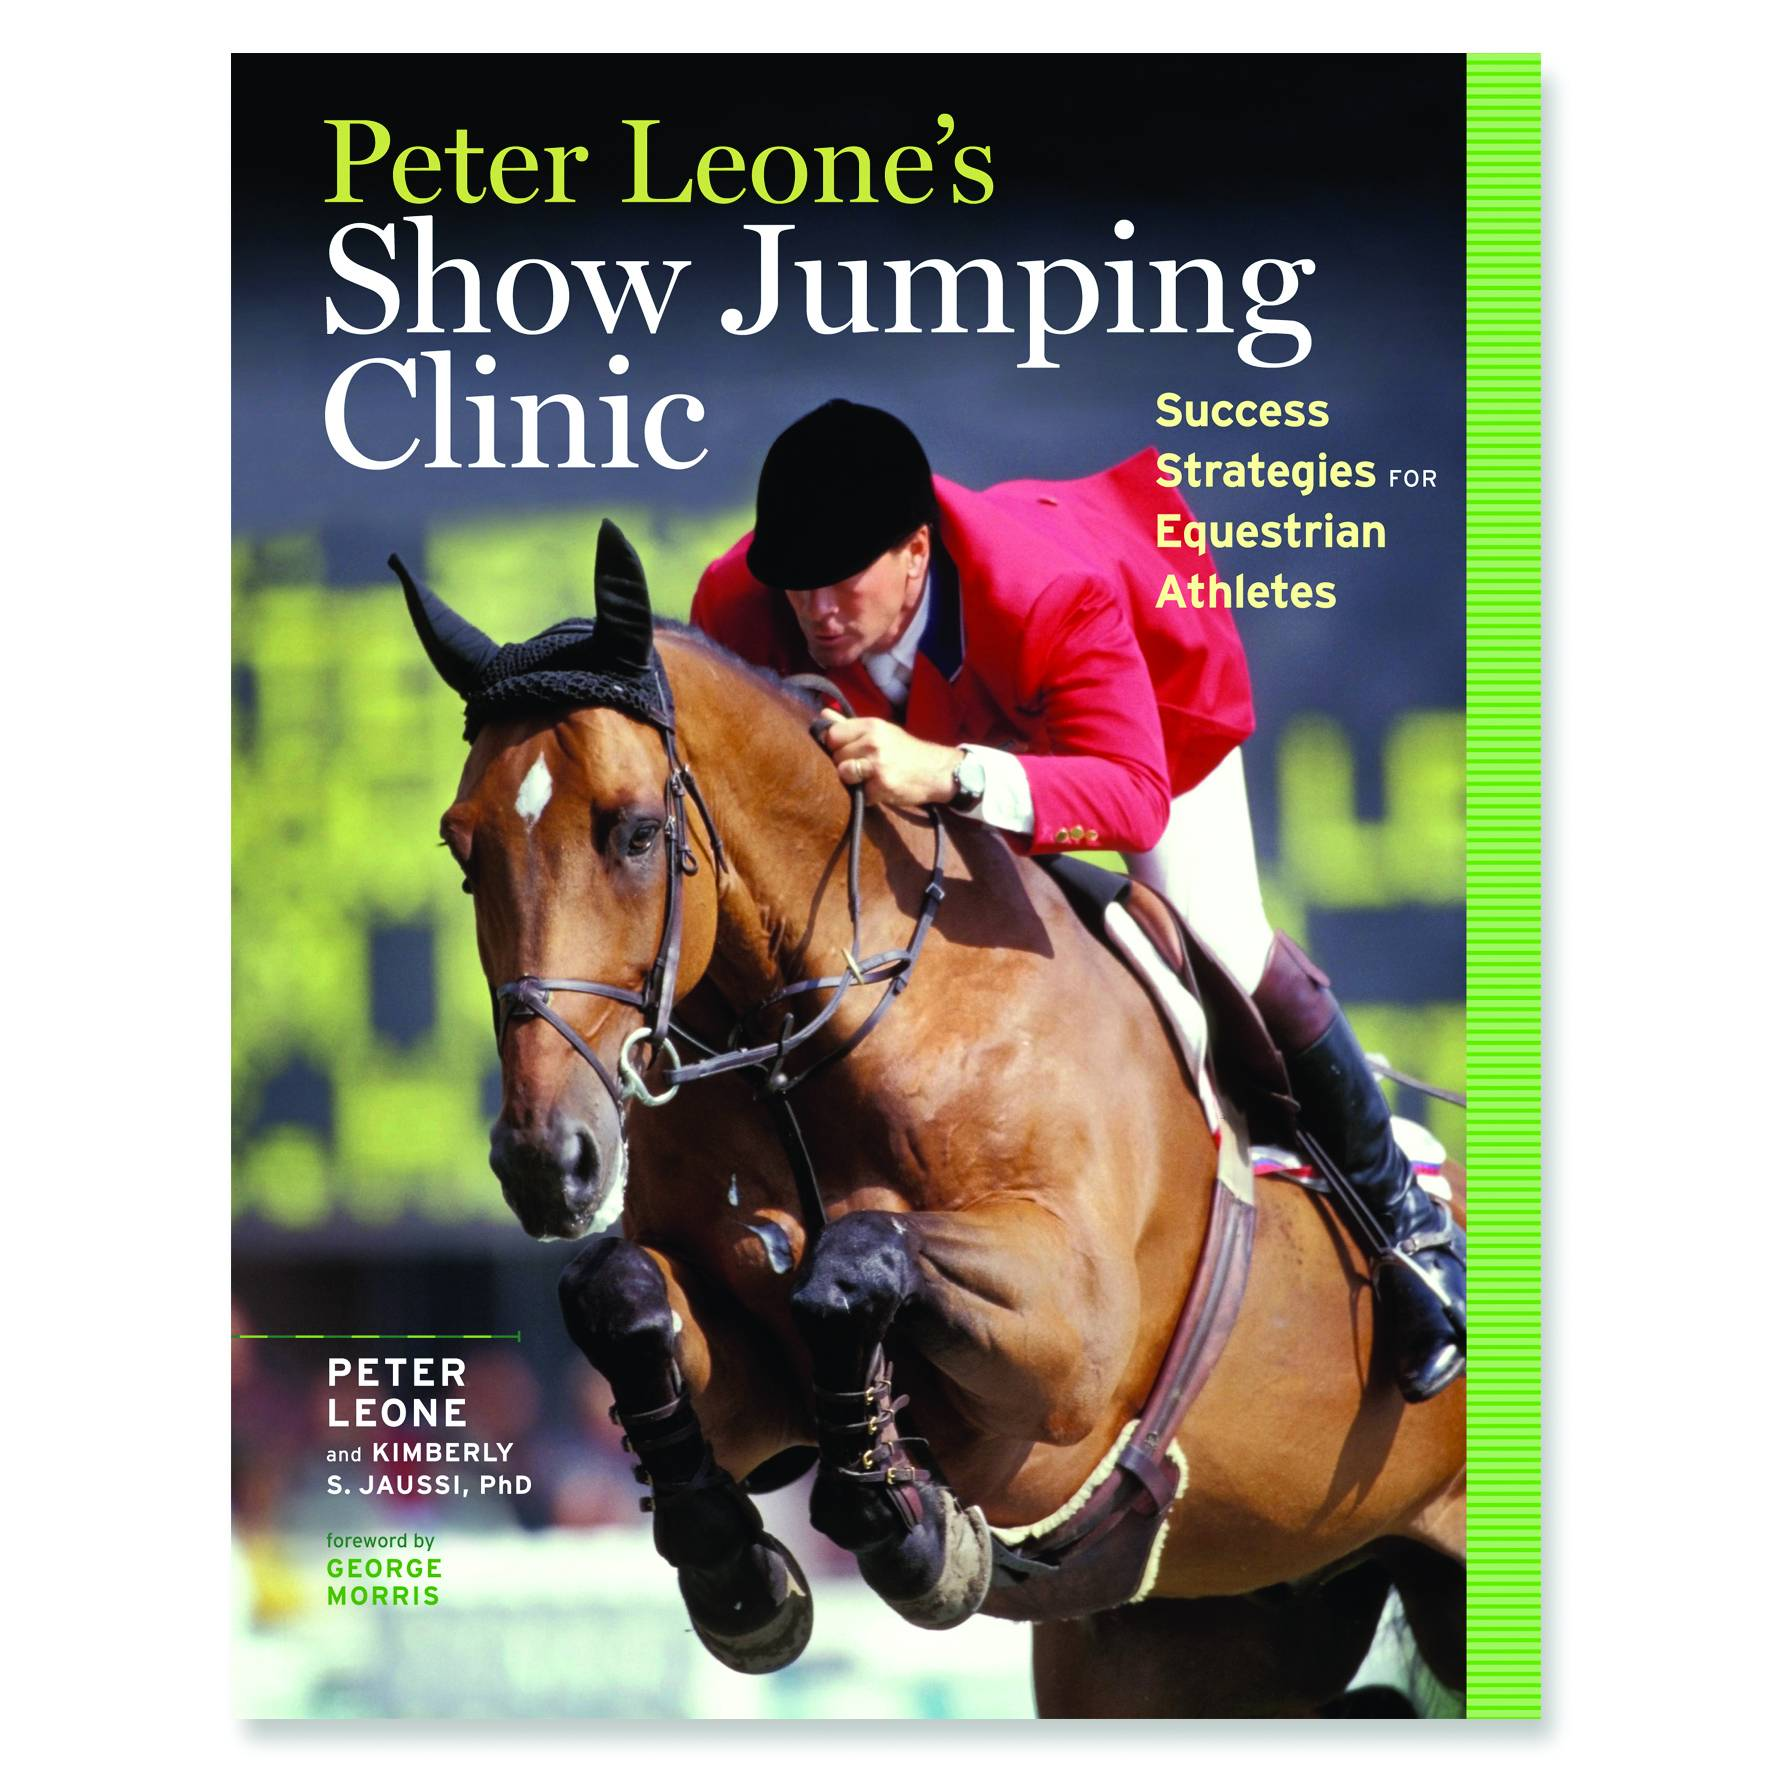 Peter Leones Show Jumping Clinic